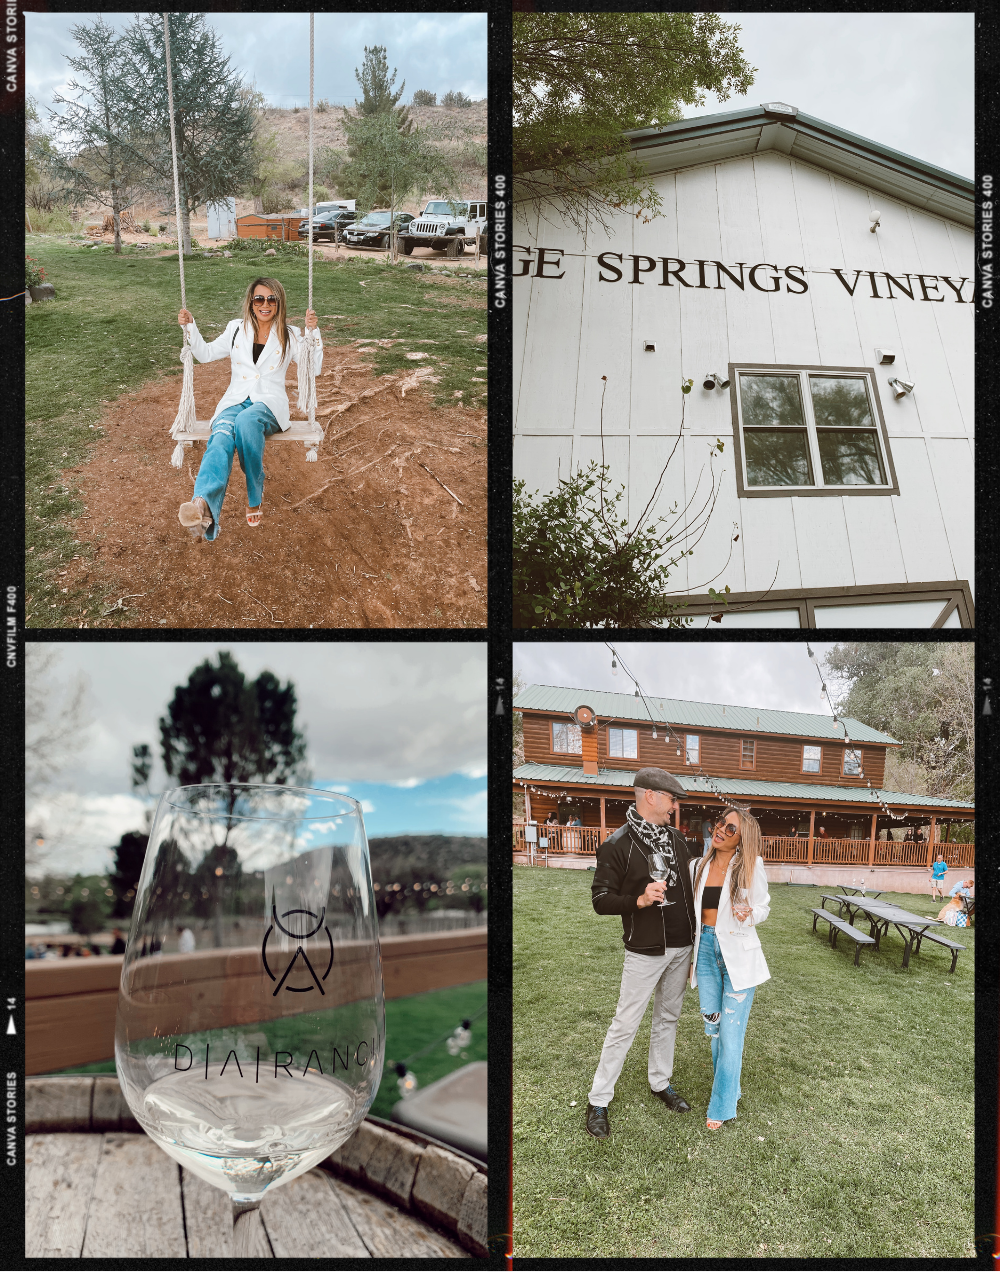 Page Springs Vineyard Sedona, wineries in Sedona, Sedona winery, Sedona vineyard, Sedona Travel Itinerary, SedonaTravel Guide, Tips for Your FirstSedonaTrip,A Weekend Guide toSedona, Guide to Sedona, 2 days in Sedona, Red Soles and Red Wine, travel blogger, travel influencer, Jen Worman